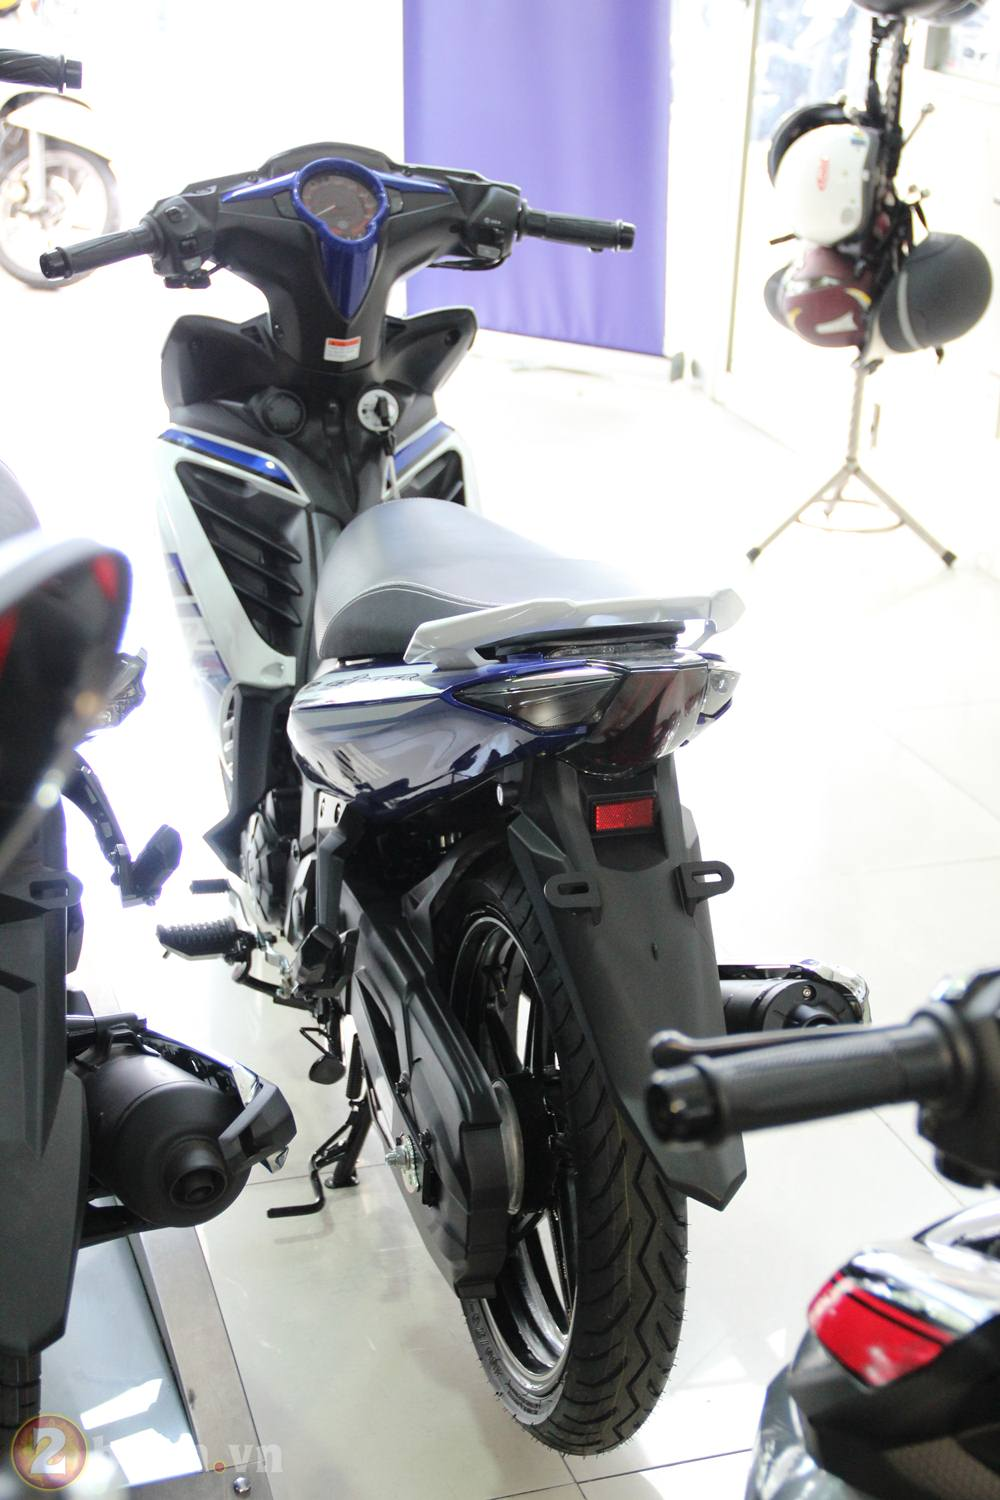 Cung 2banh vao showroom xem thu Exciter GP 2013 - 2